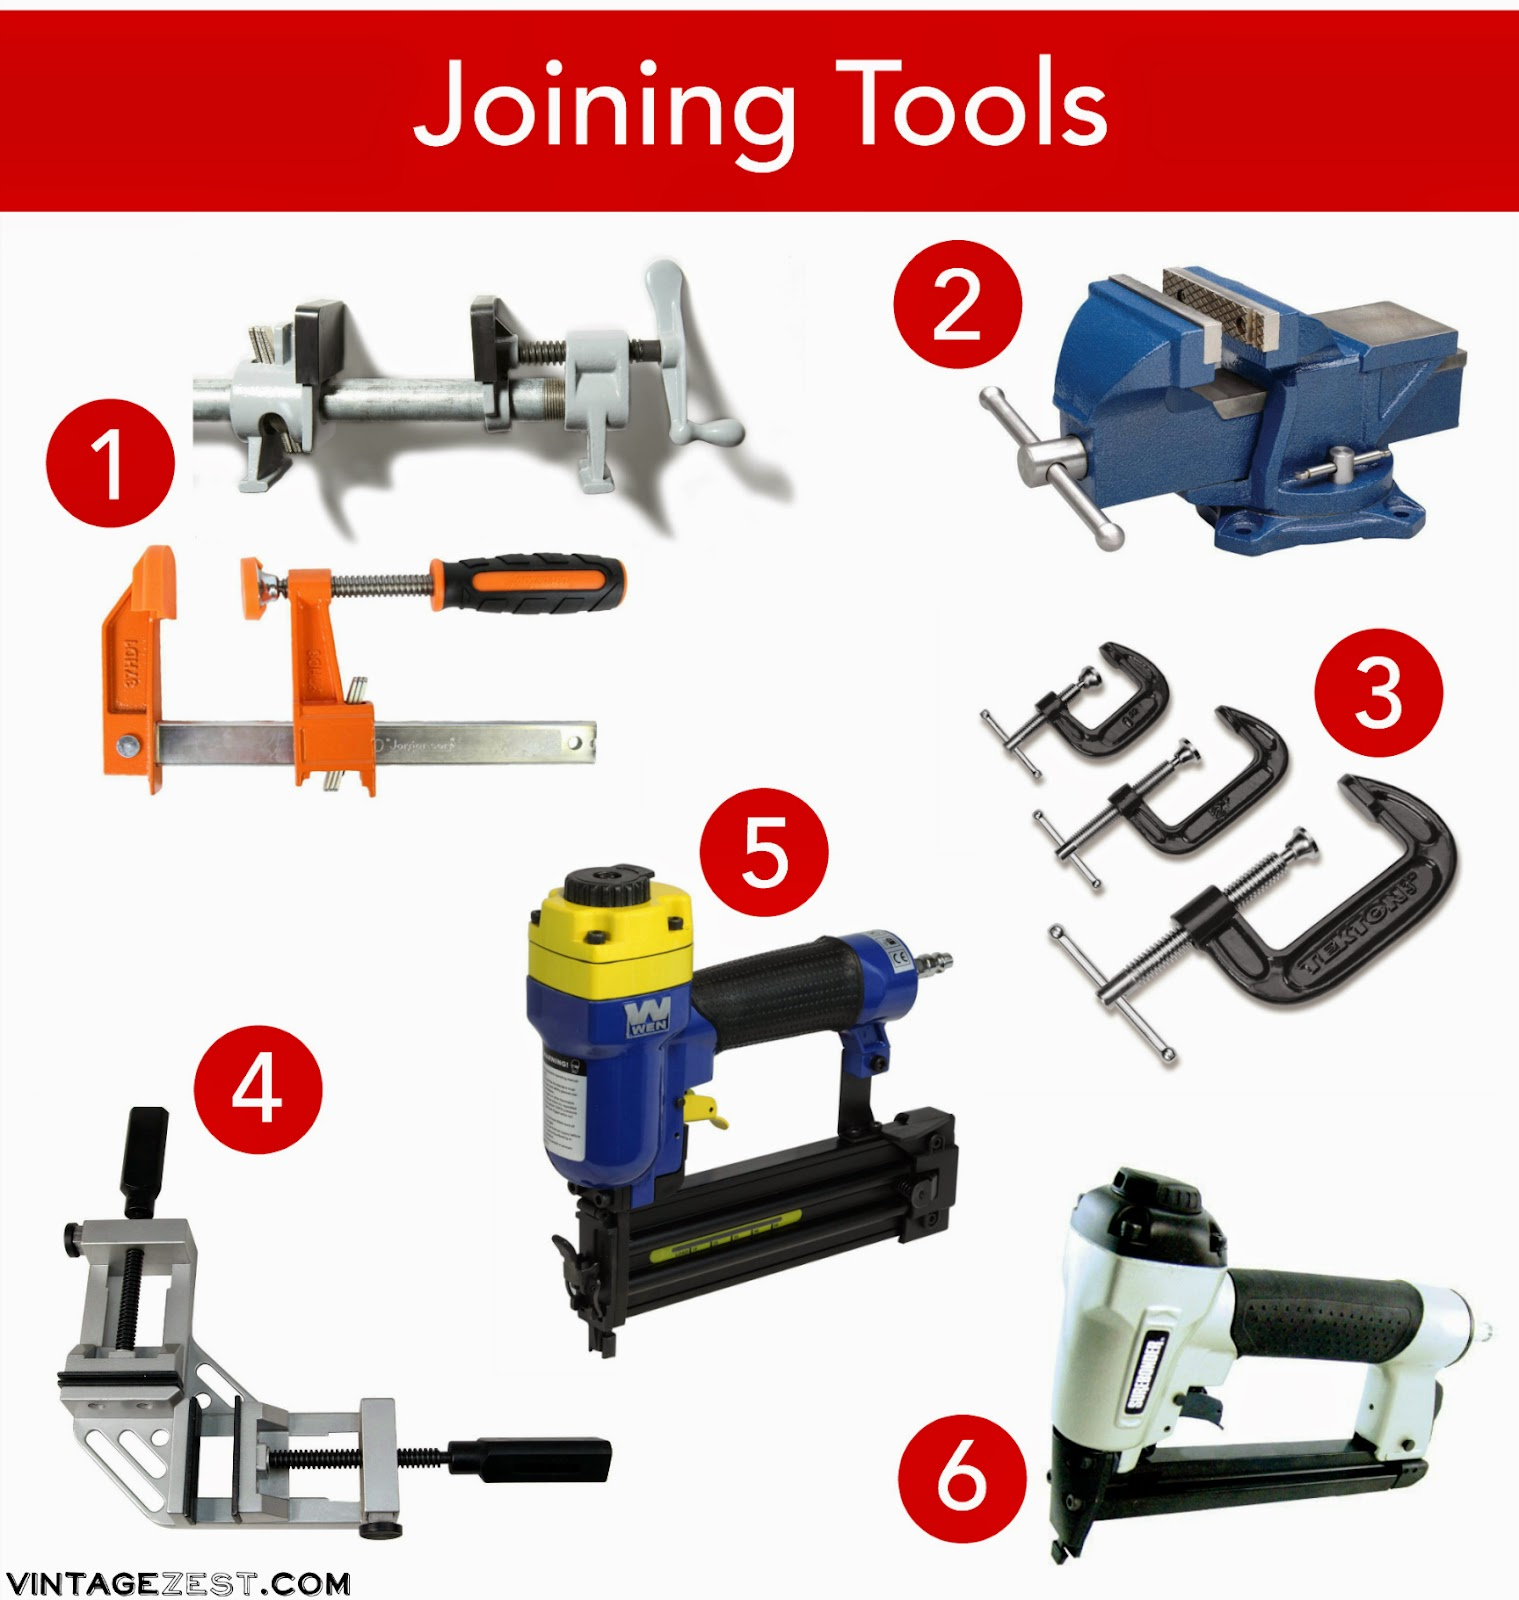 Innovative With Highland Woodworkings Starter Woodworking Tool List, Becoming A Woodworker Is Easier Than You Might Think This Starter Tool List Includes A Wide Variety Of Tools Used For Generalpurpose &quotstraightline&quot Woodworkingthat Is,